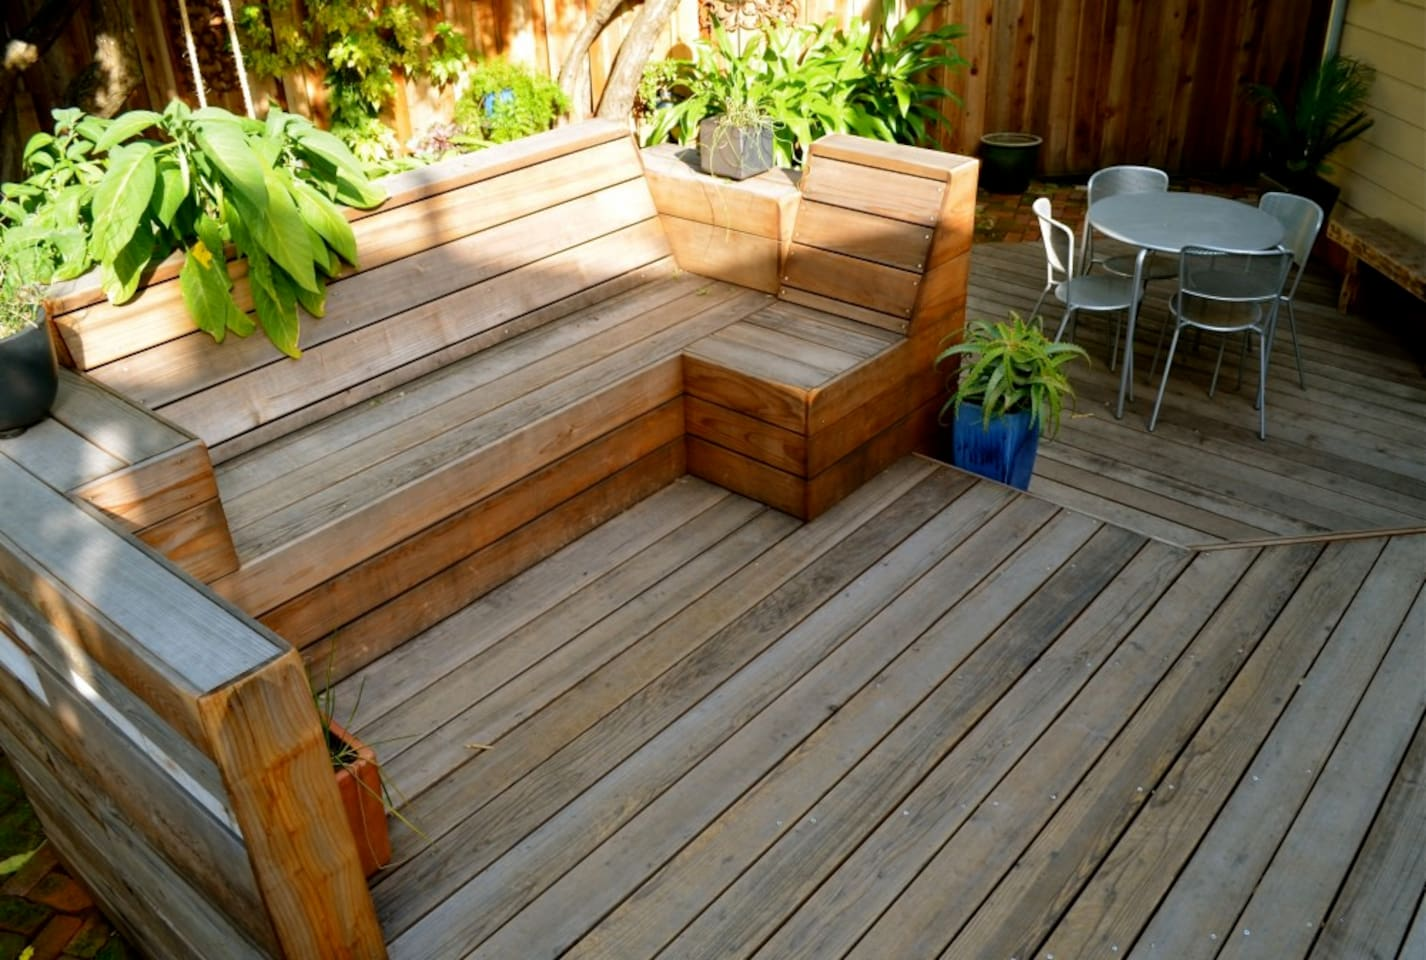 Custom designed redwood bench and (shared) deck is accessible from kitchen